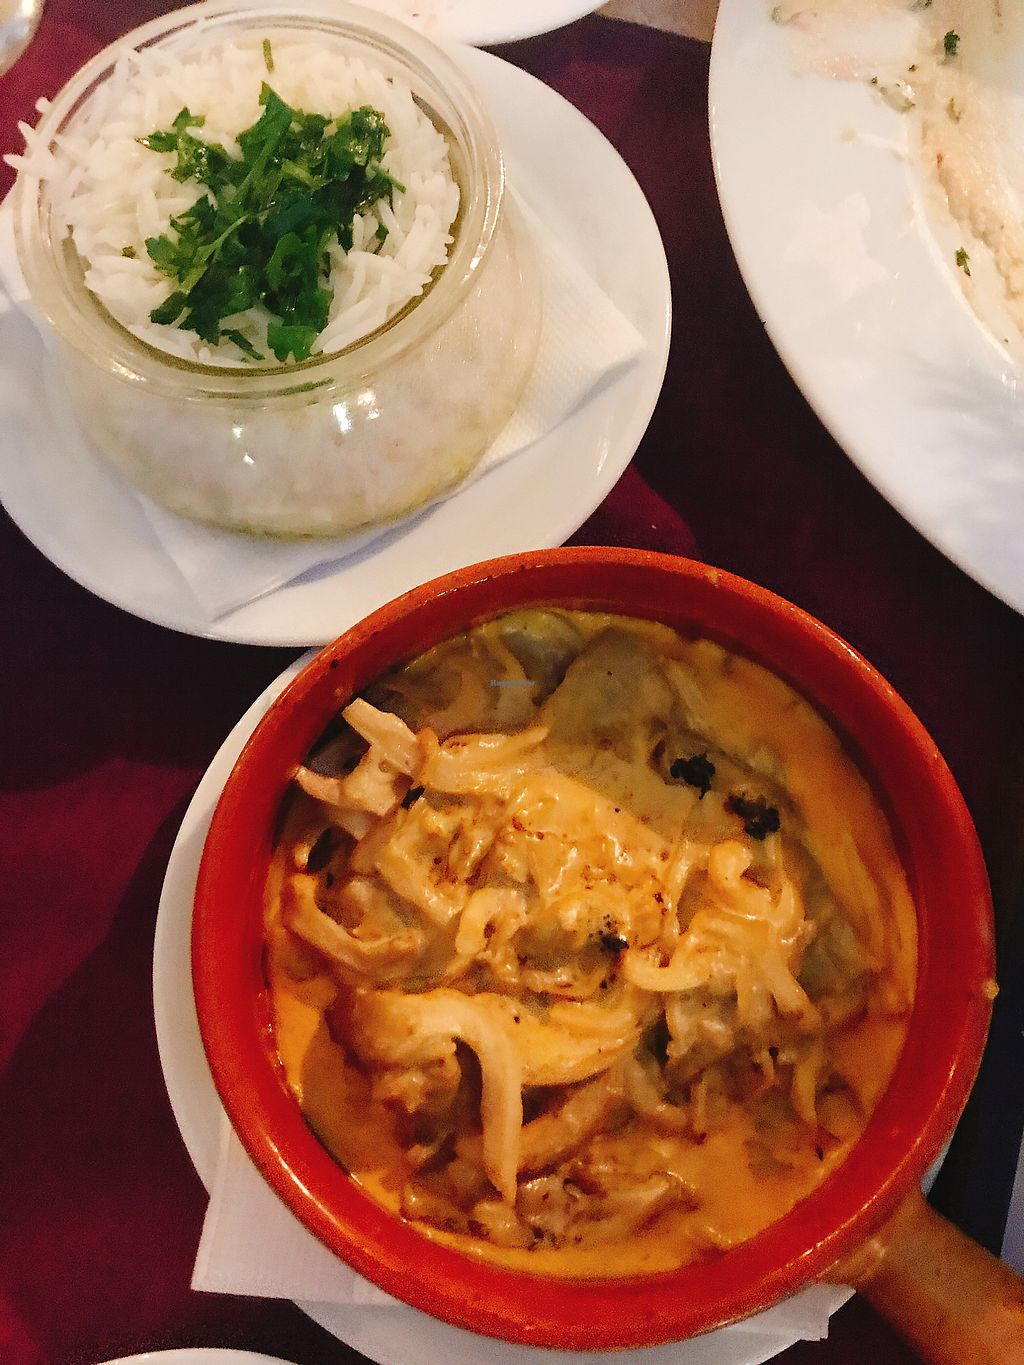 """Photo of Aubergine  by <a href=""""/members/profile/VinnieHTHoang"""">VinnieHTHoang</a> <br/>my favorite - plenteous mushrooms with a side of jasmine rice!!! <br/> August 11, 2017  - <a href='/contact/abuse/image/61324/291586'>Report</a>"""